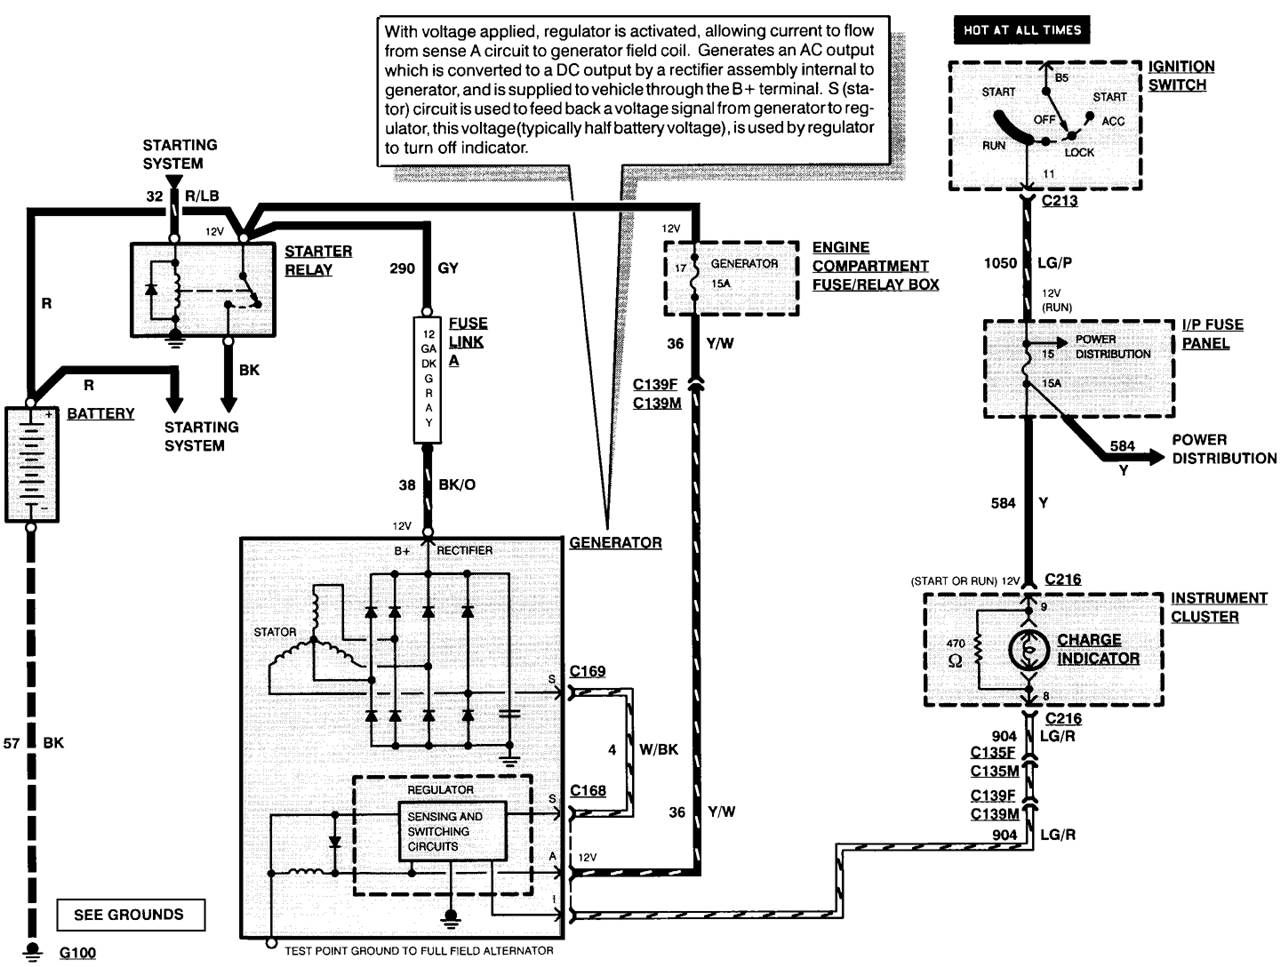 Ford alternator wiring diagram internal regulator wiring diagram alternator penntex alternator wiring diagram how to wire alternator diagram at edmiracle.co